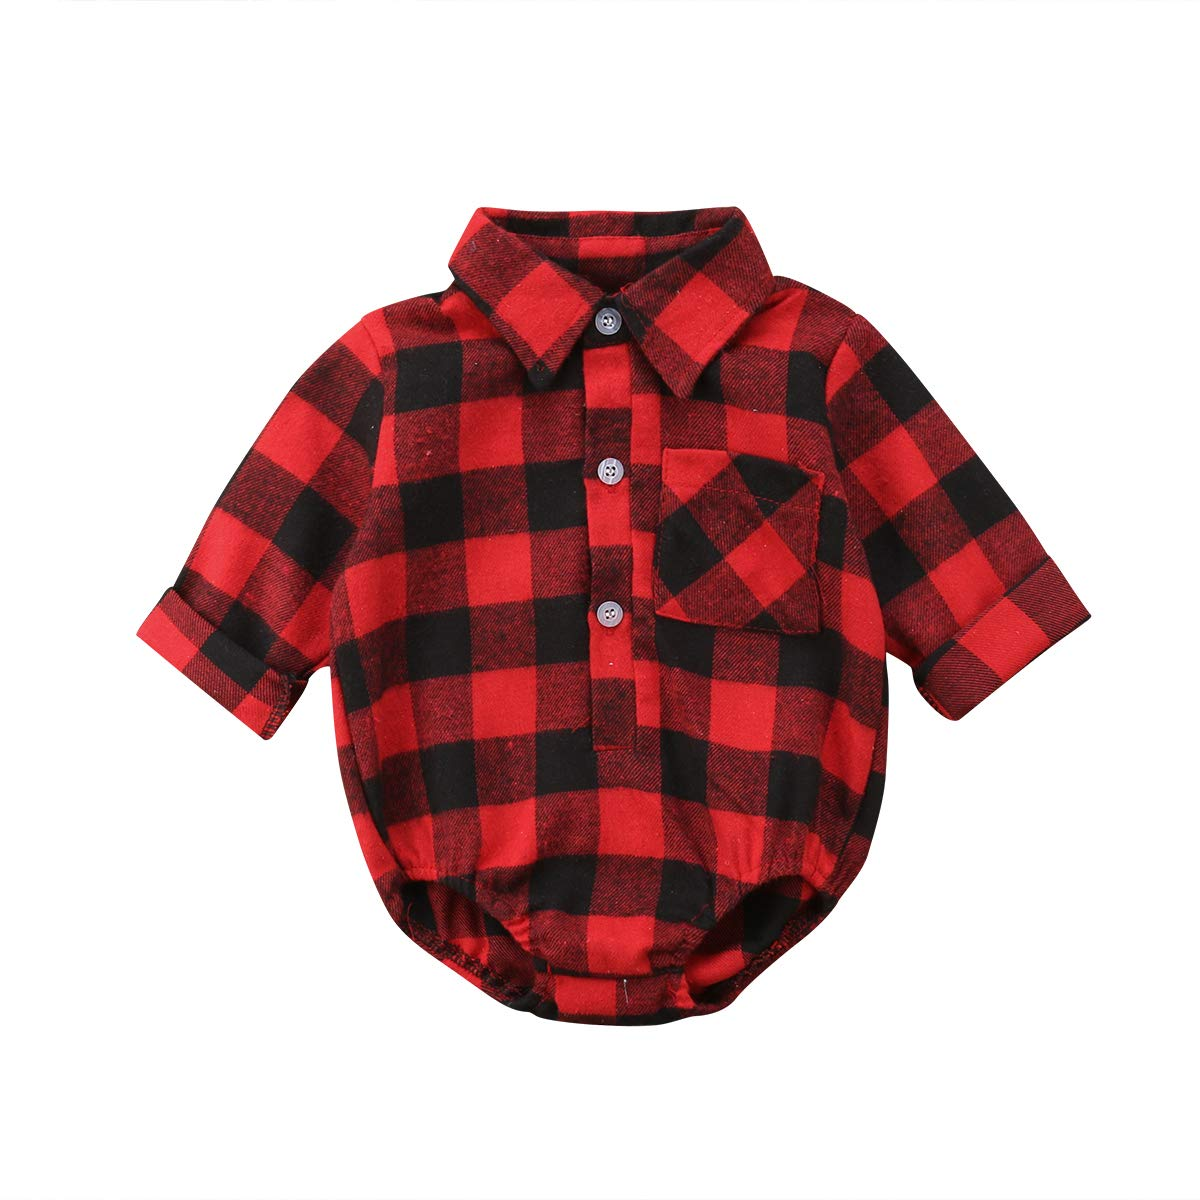 Canrulo Infant Baby Long Sleeve Romper Christmas Deer Plaid Shirt Jumpsuit Button-up Playsuit Winter Outfits